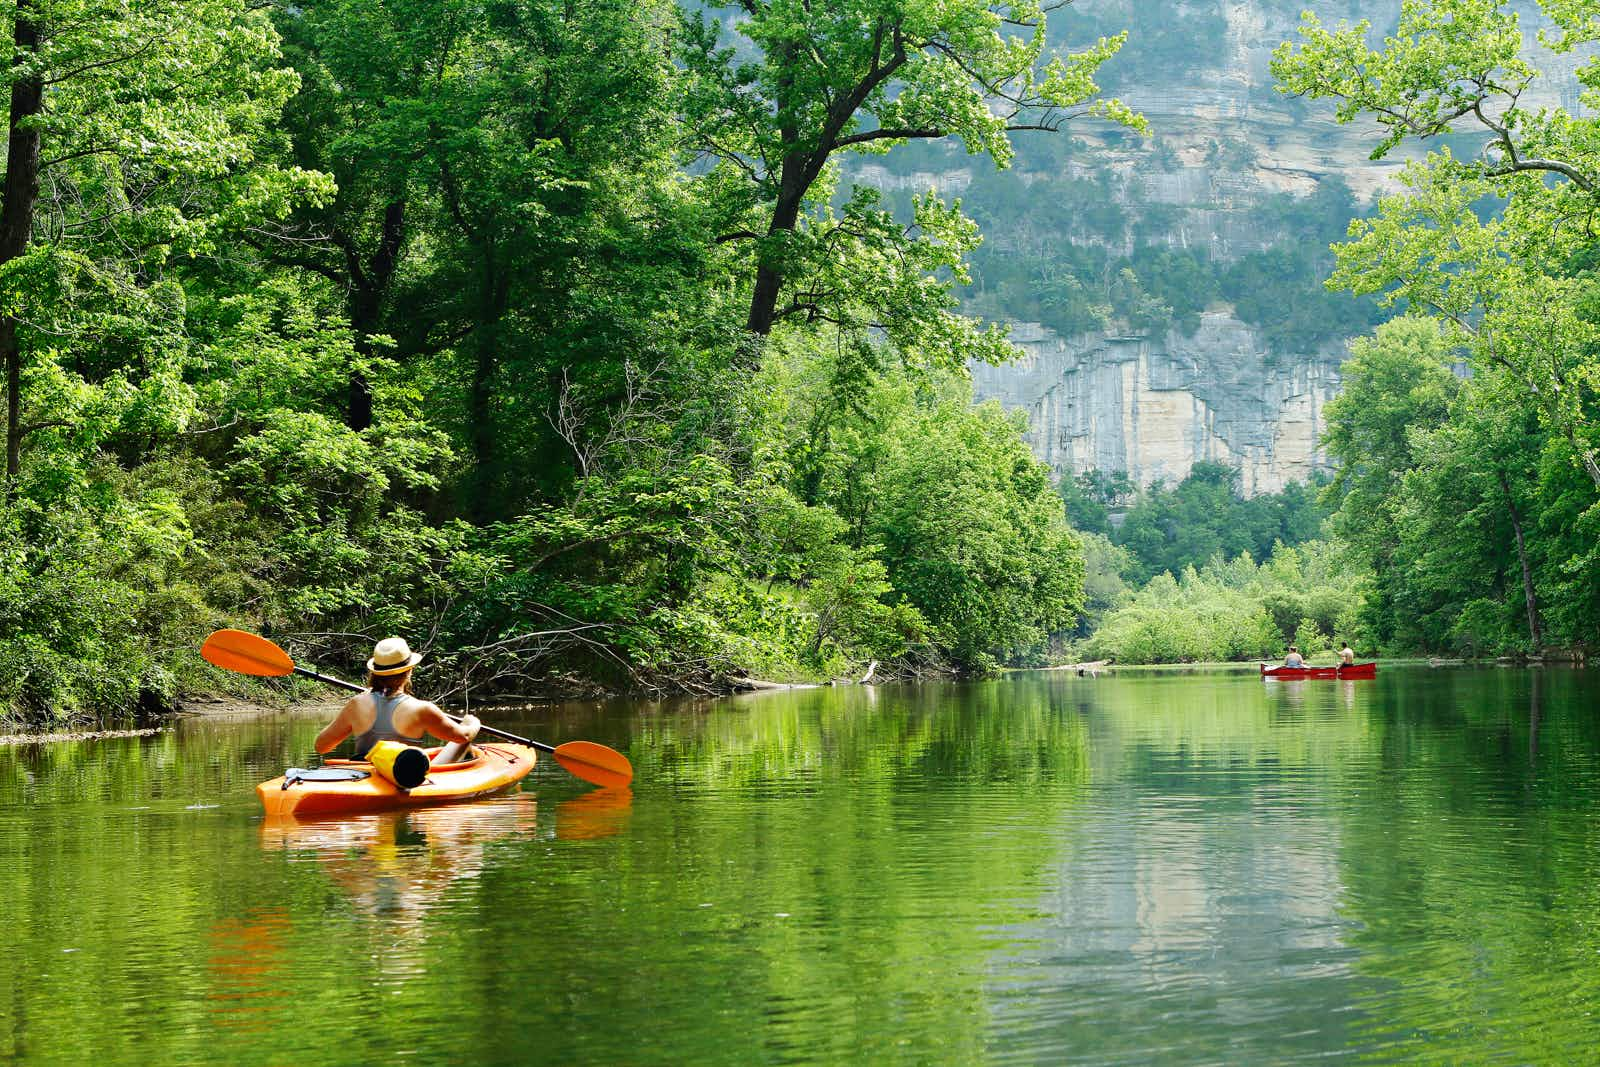 Kayakers on a river surrounded by green trees; summer escapes in the Southern US